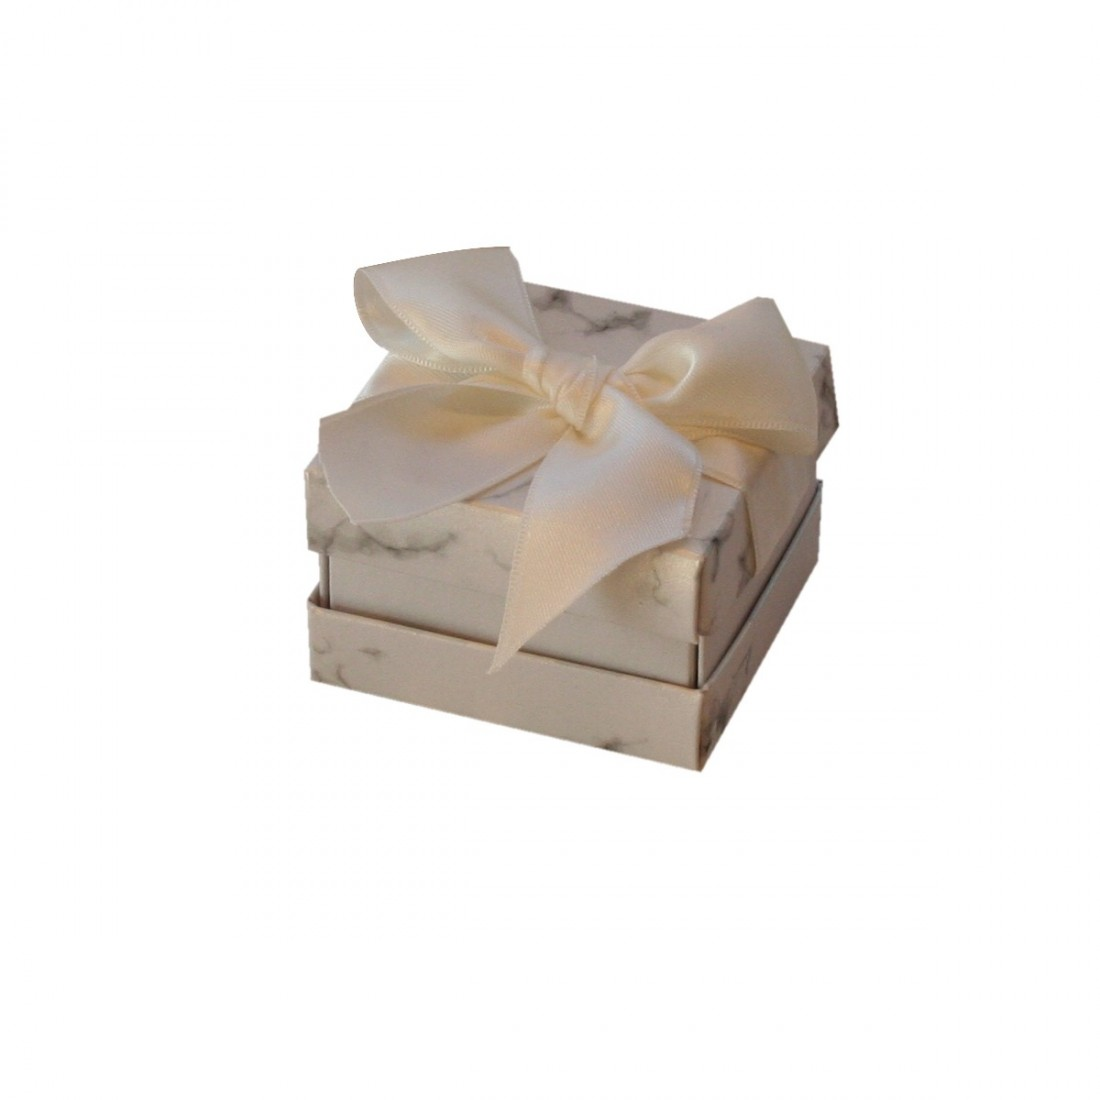 Jewellery box for ring or earrings, Florencia white marble